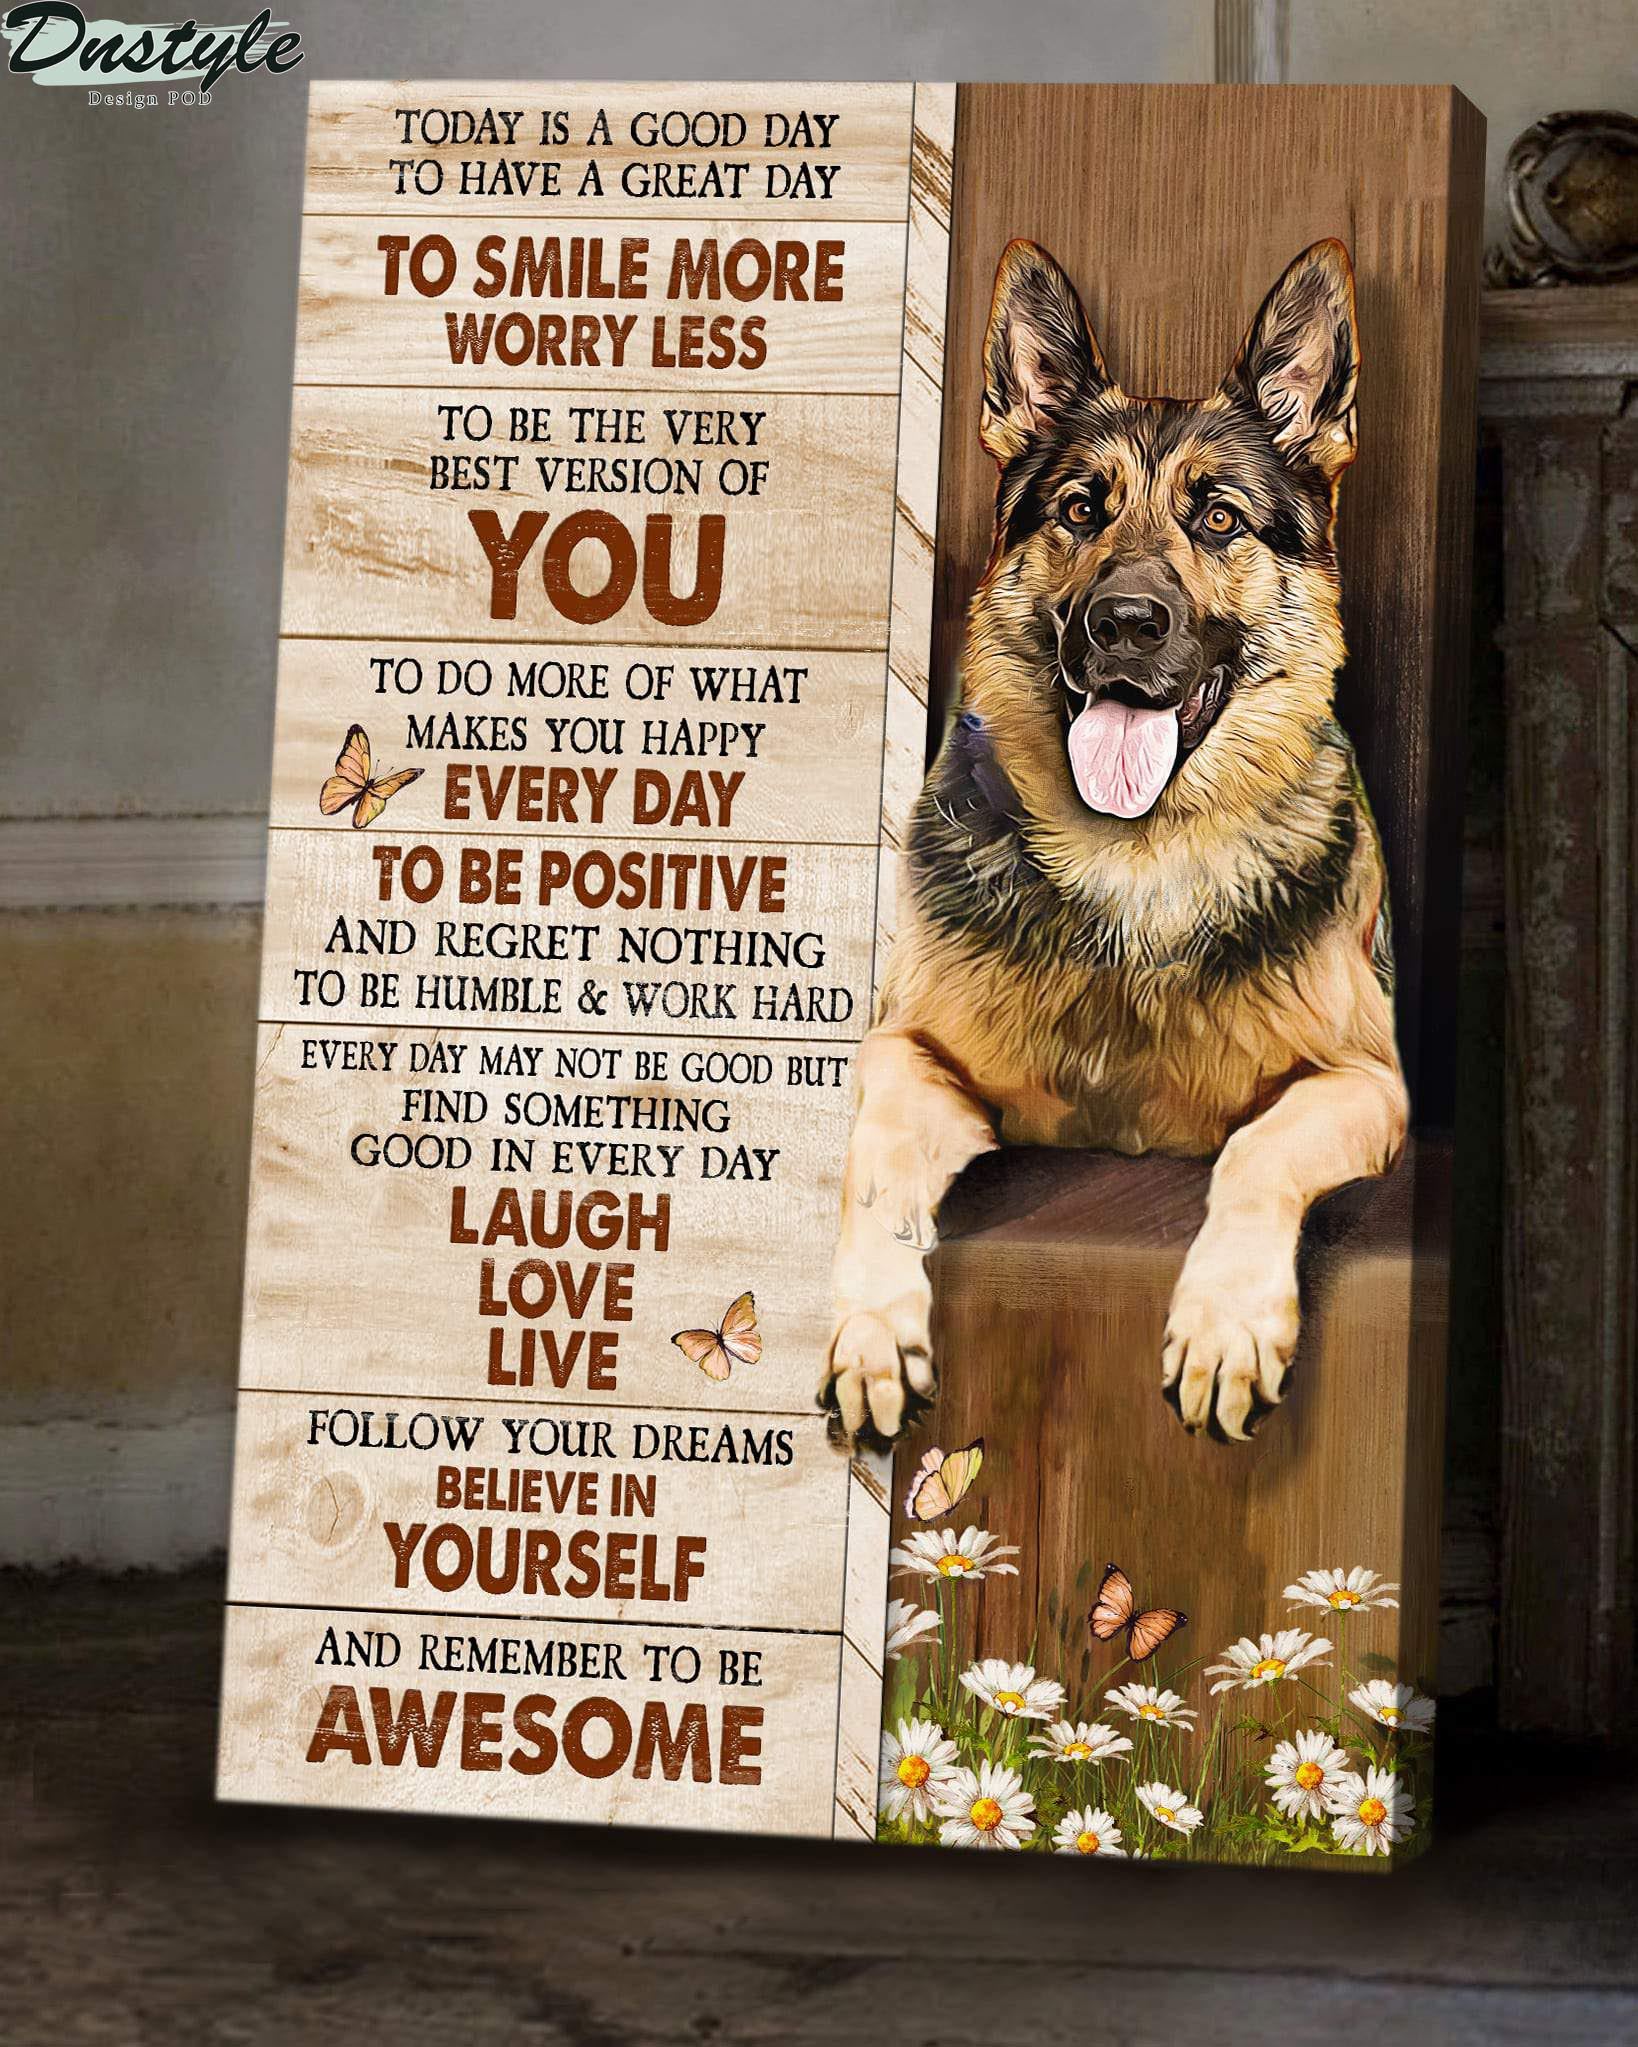 German shepherd today is a good day canvas